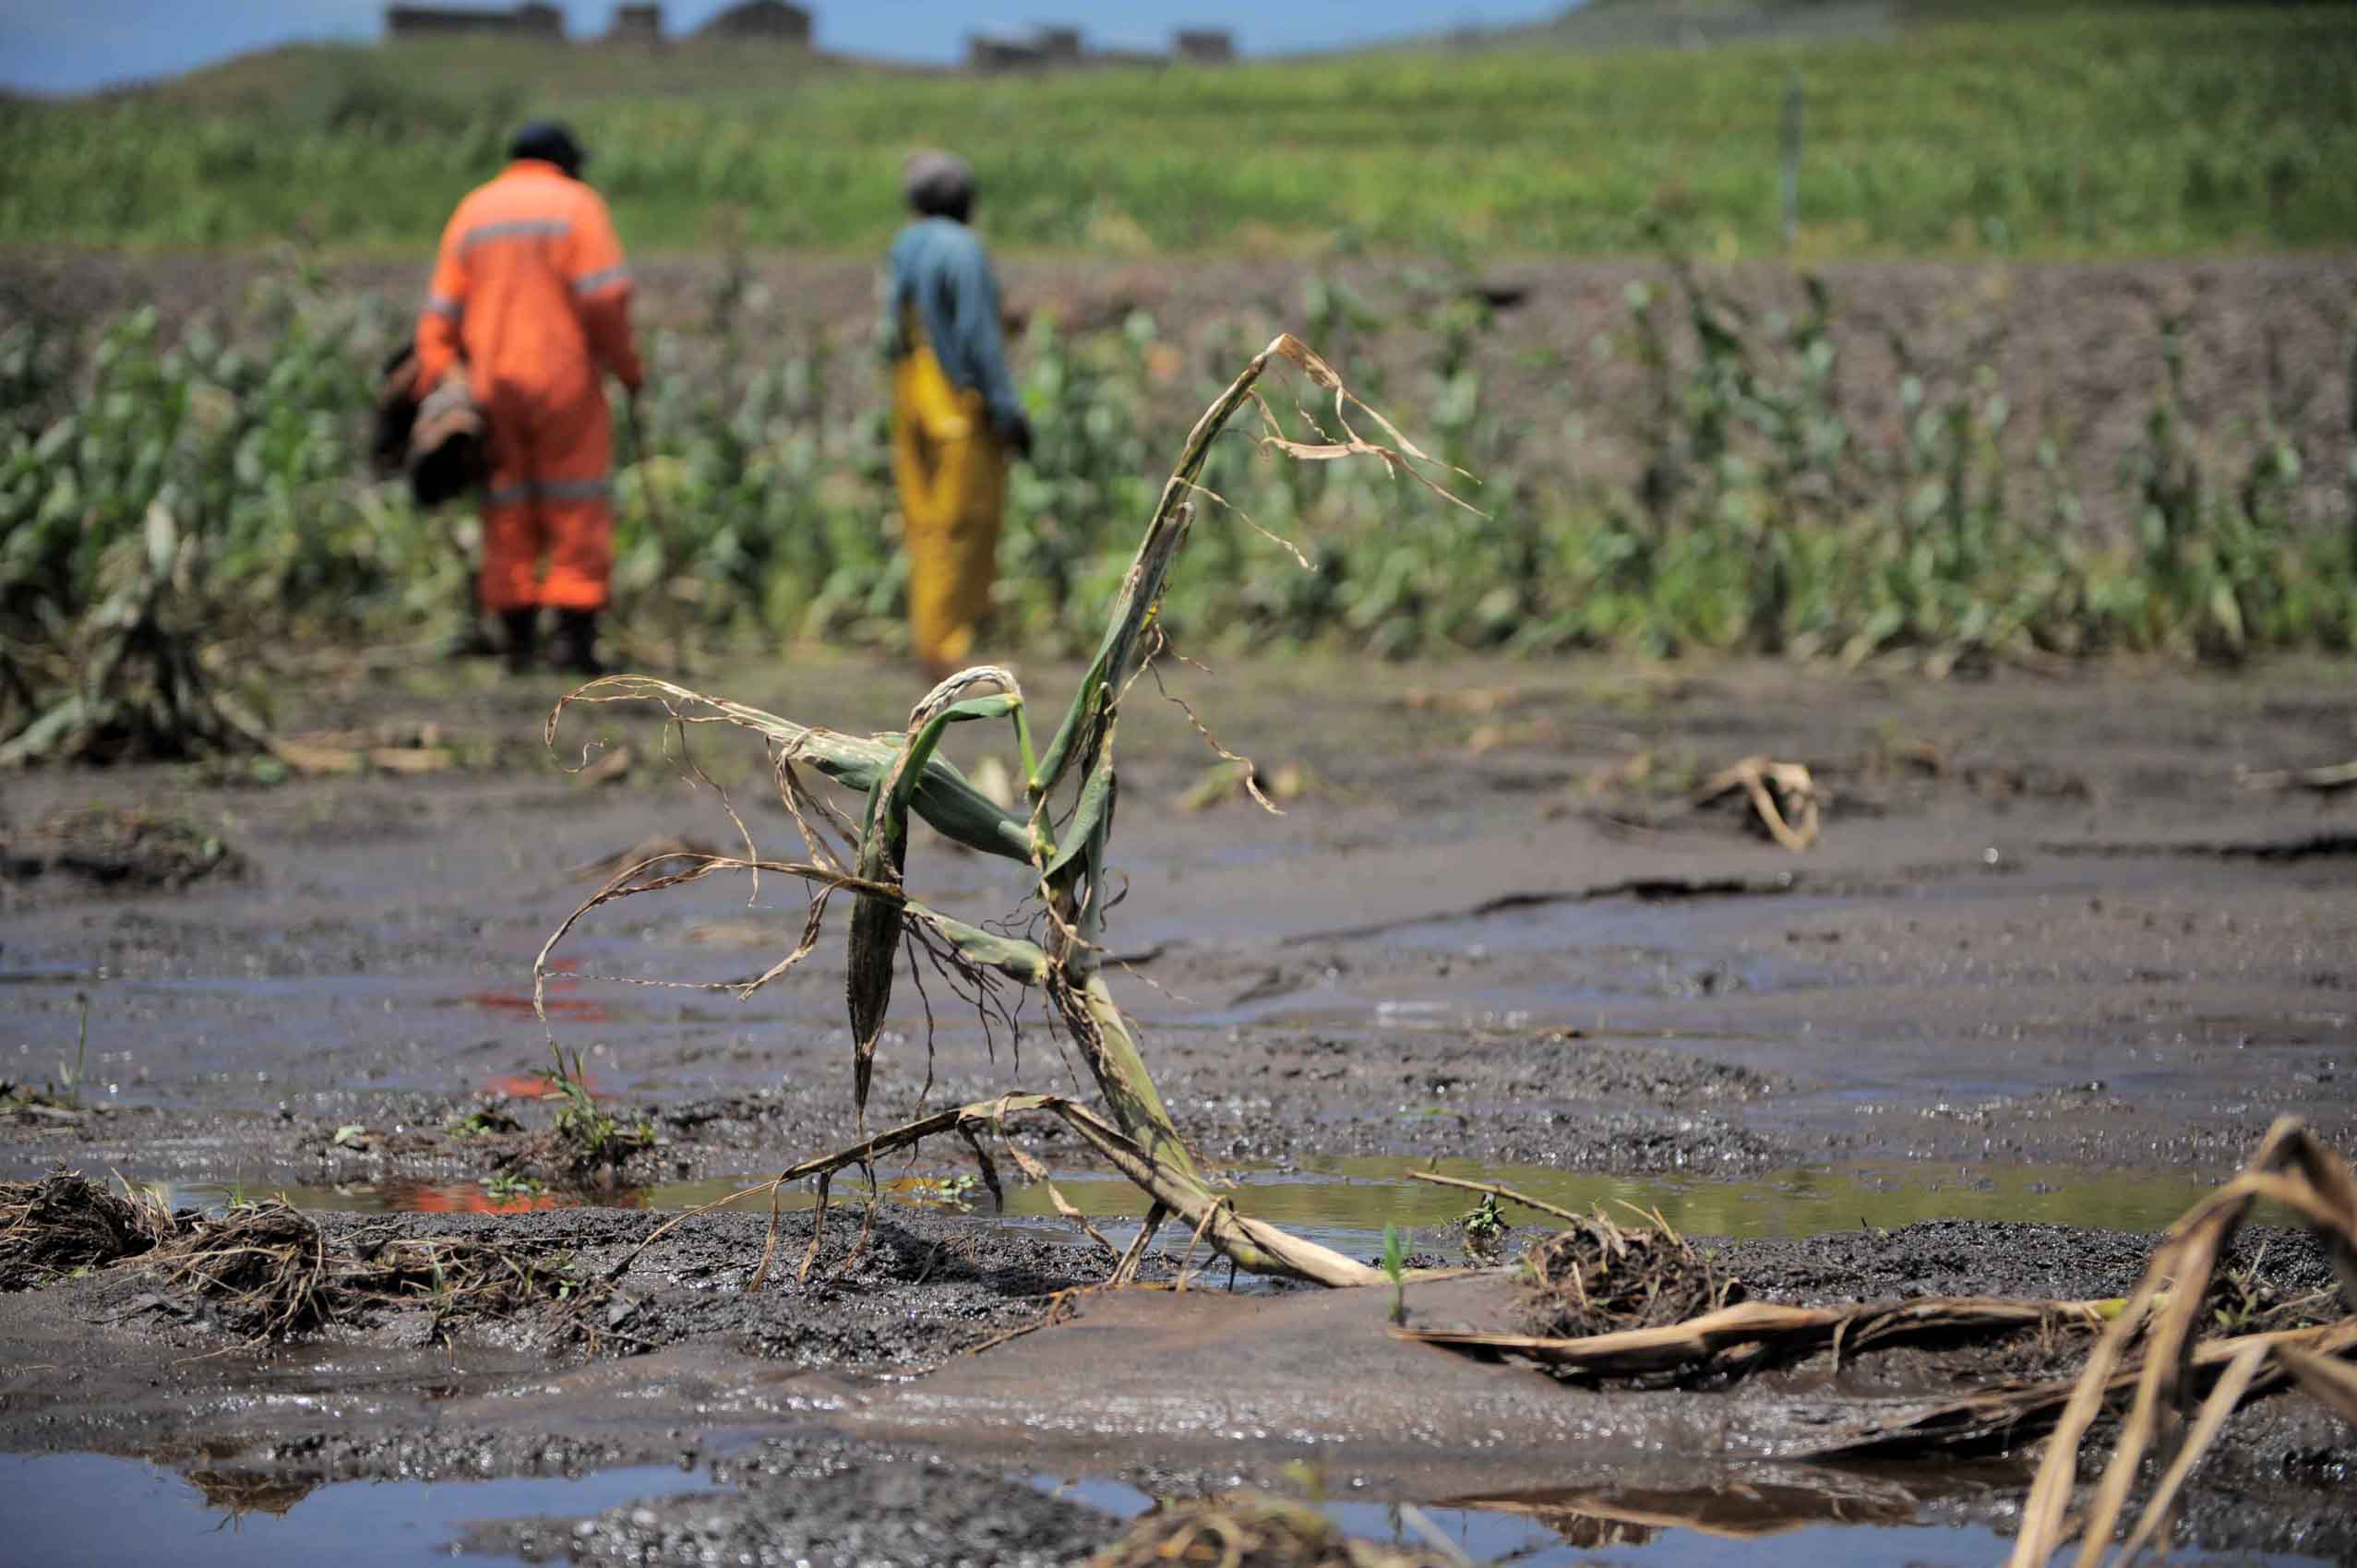 Recent flooding has left many maize fields in Lesotho's Thabo-Tseka District water-logged and weed-infested